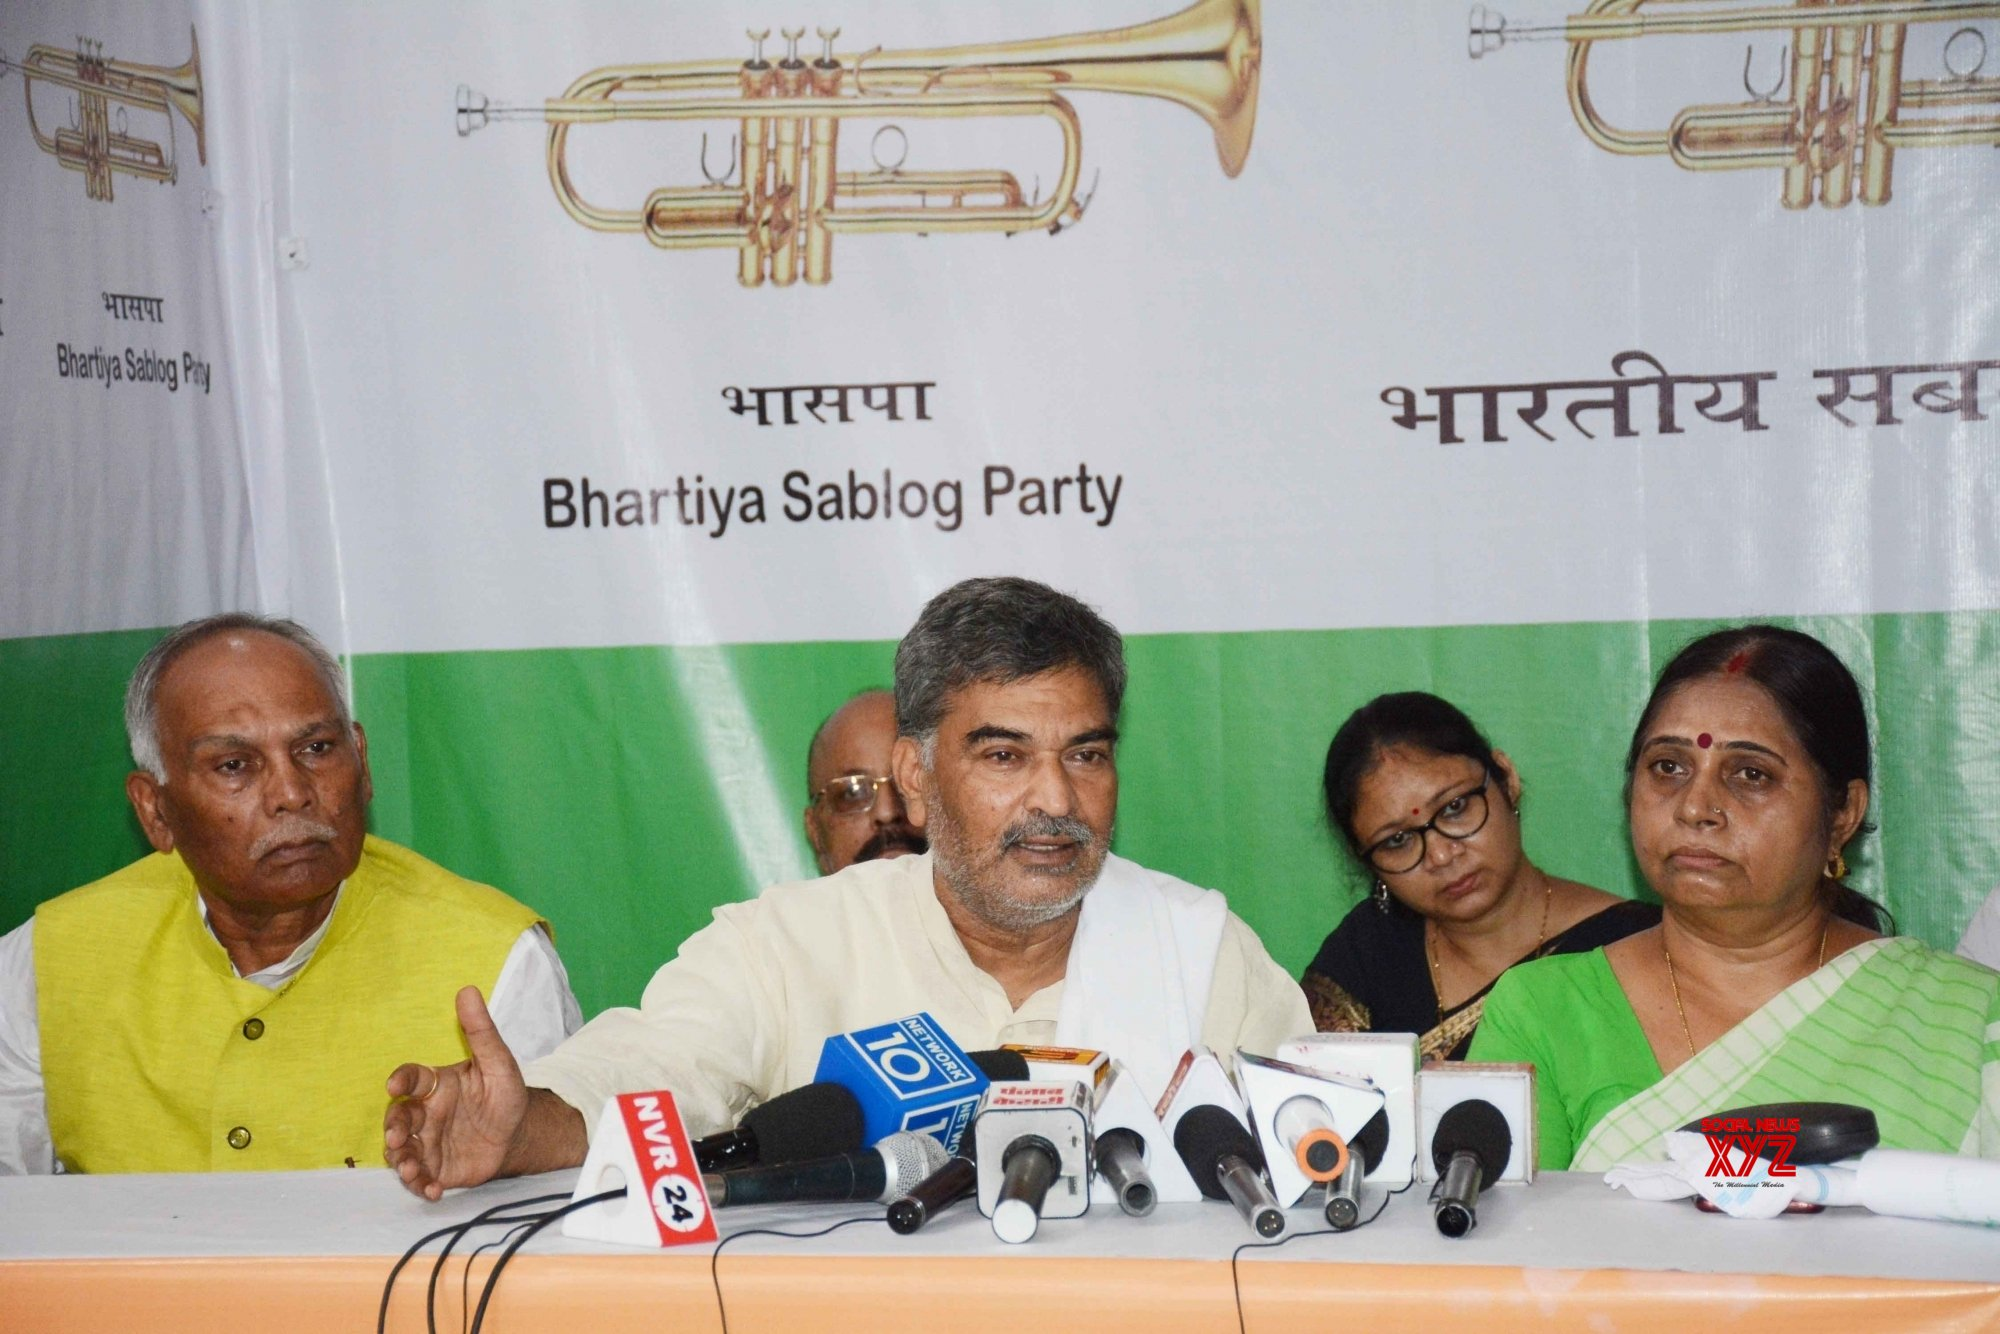 Patna: Bhartiya Sablog Party unveils party symbol ahead of Bihar polls #Gallery